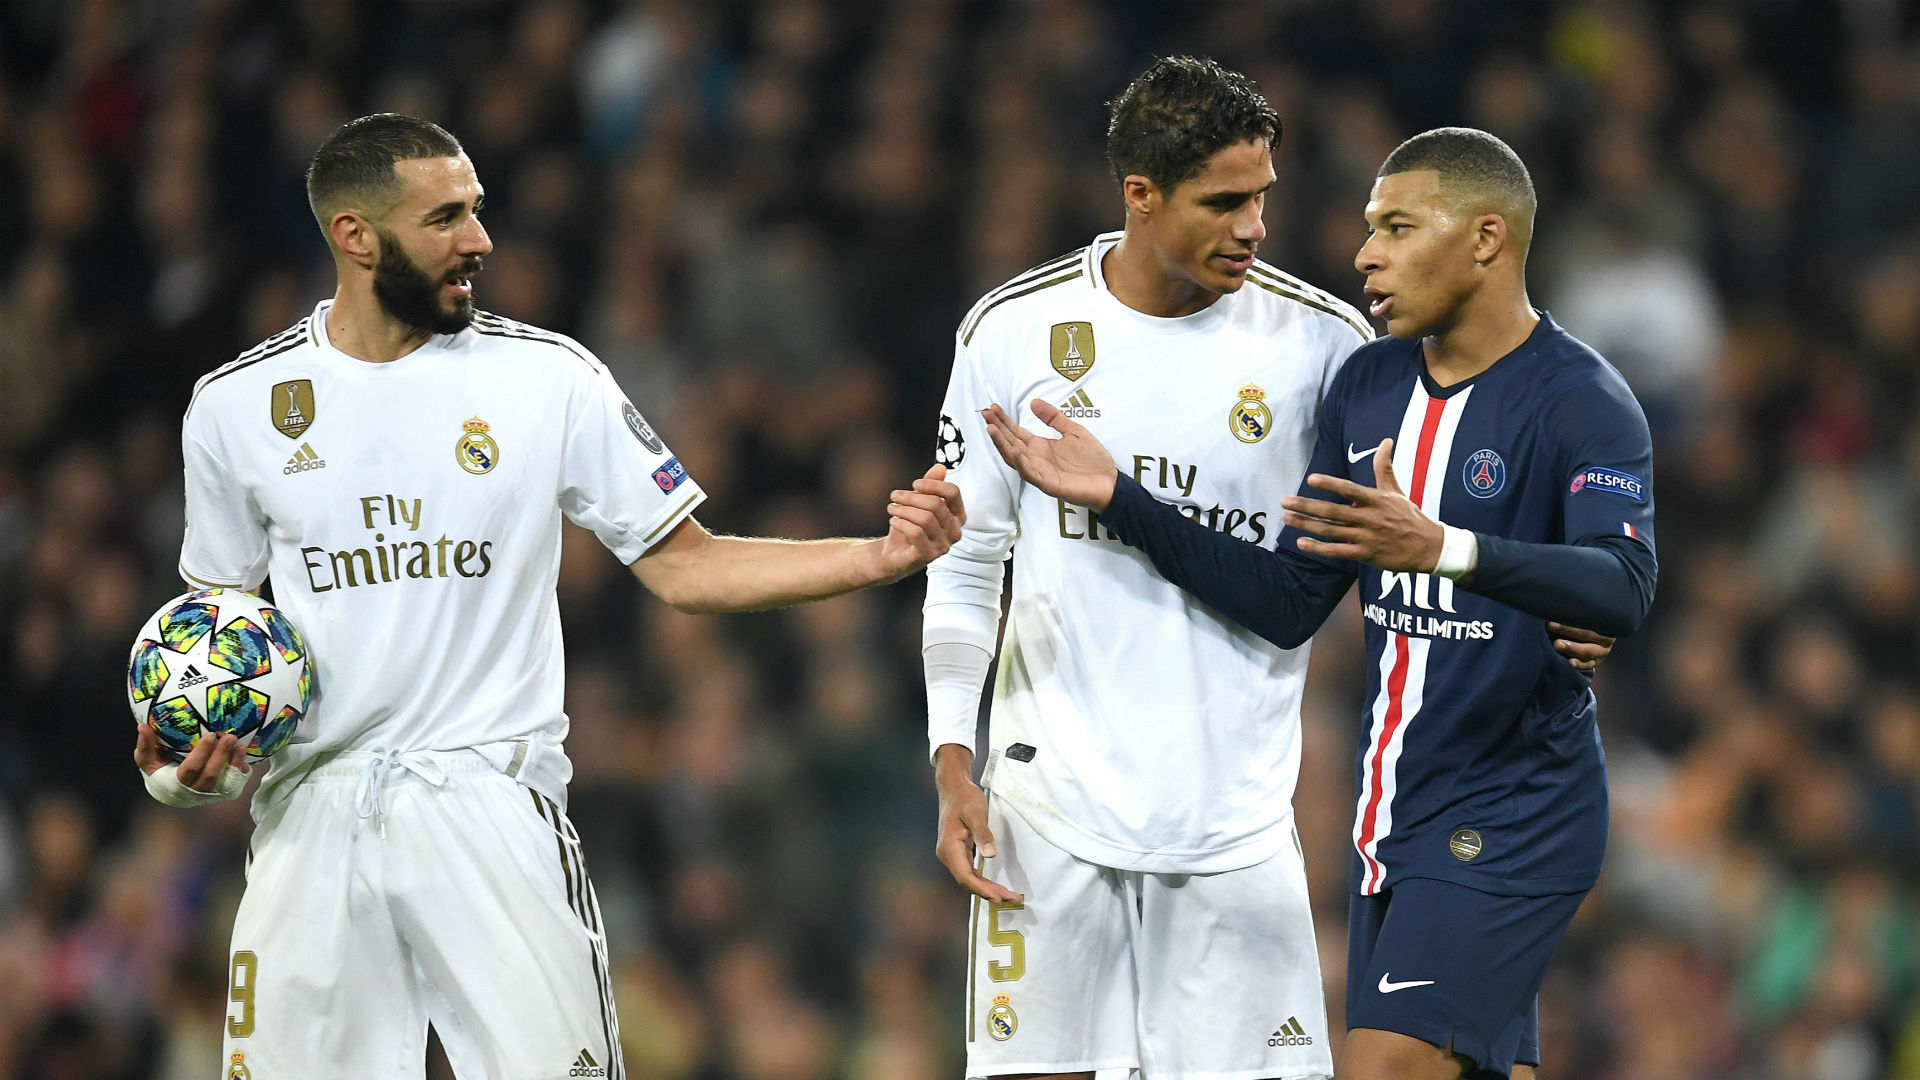 Mbappe affirms PSG commitment amid Real Madrid links and says Liverpool are 'like a machine'